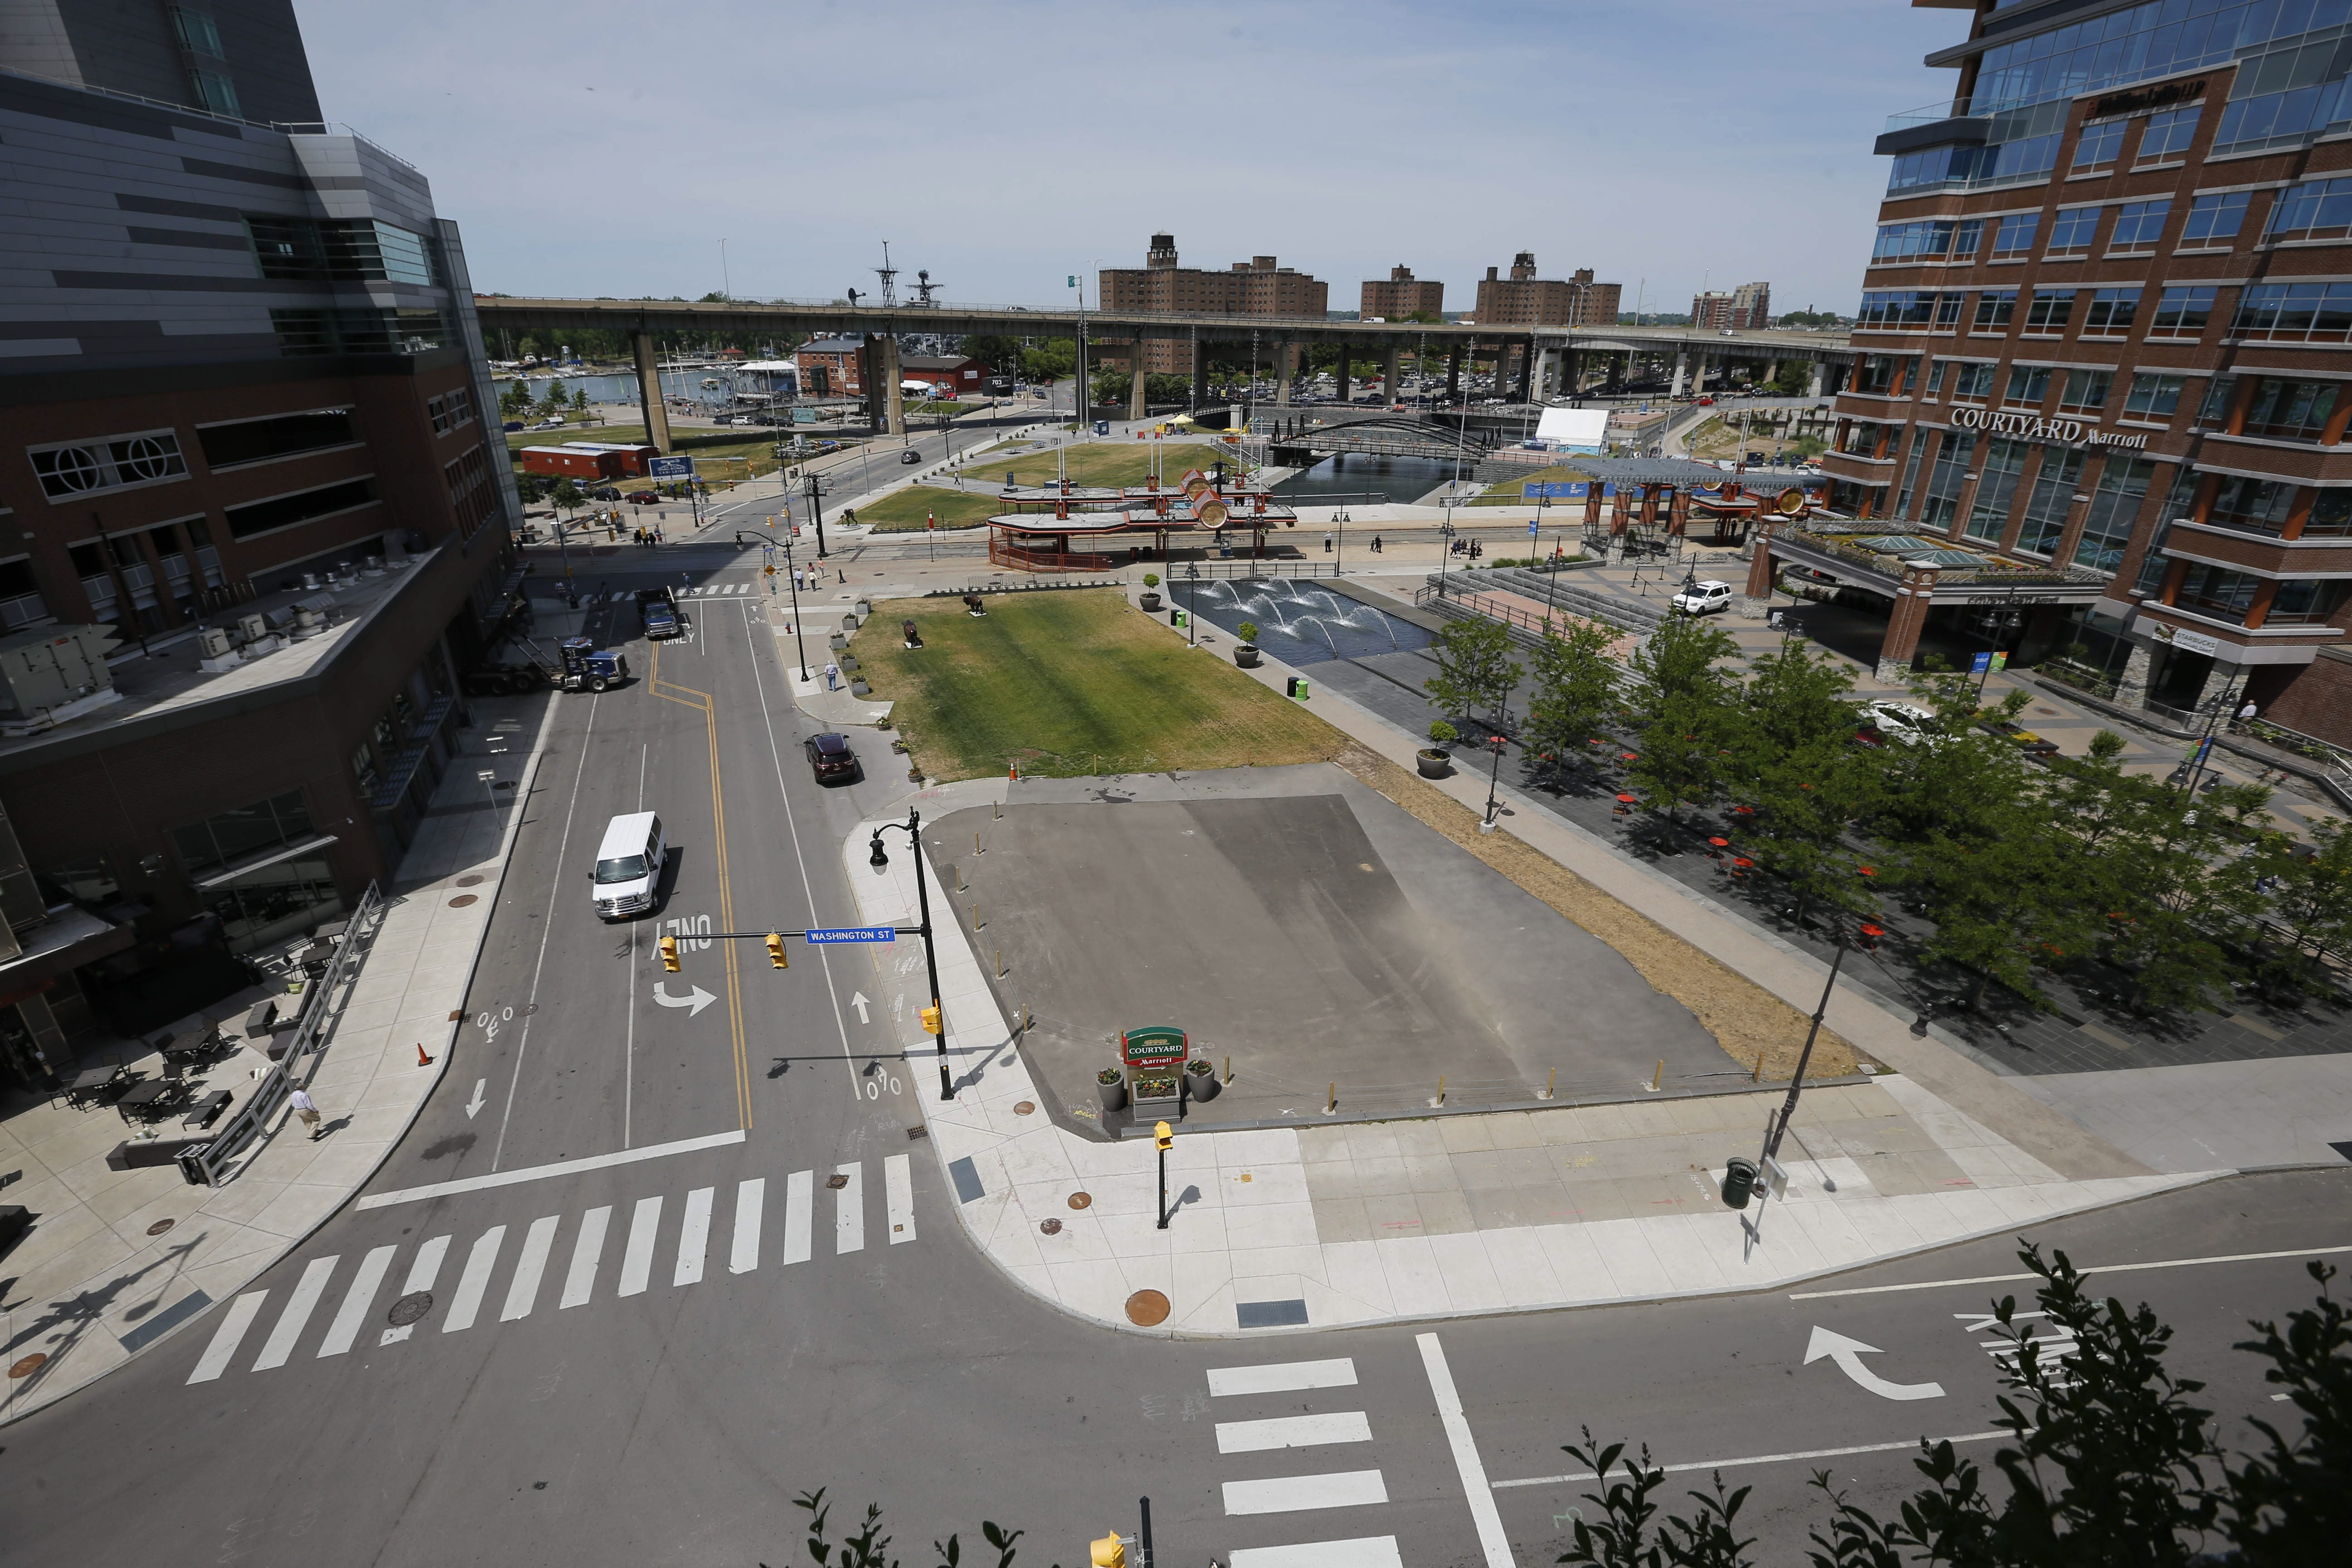 The site where Benderson is proposing a development at the corner of Washington and Scott streets. (Derek Gee/Buffalo News)